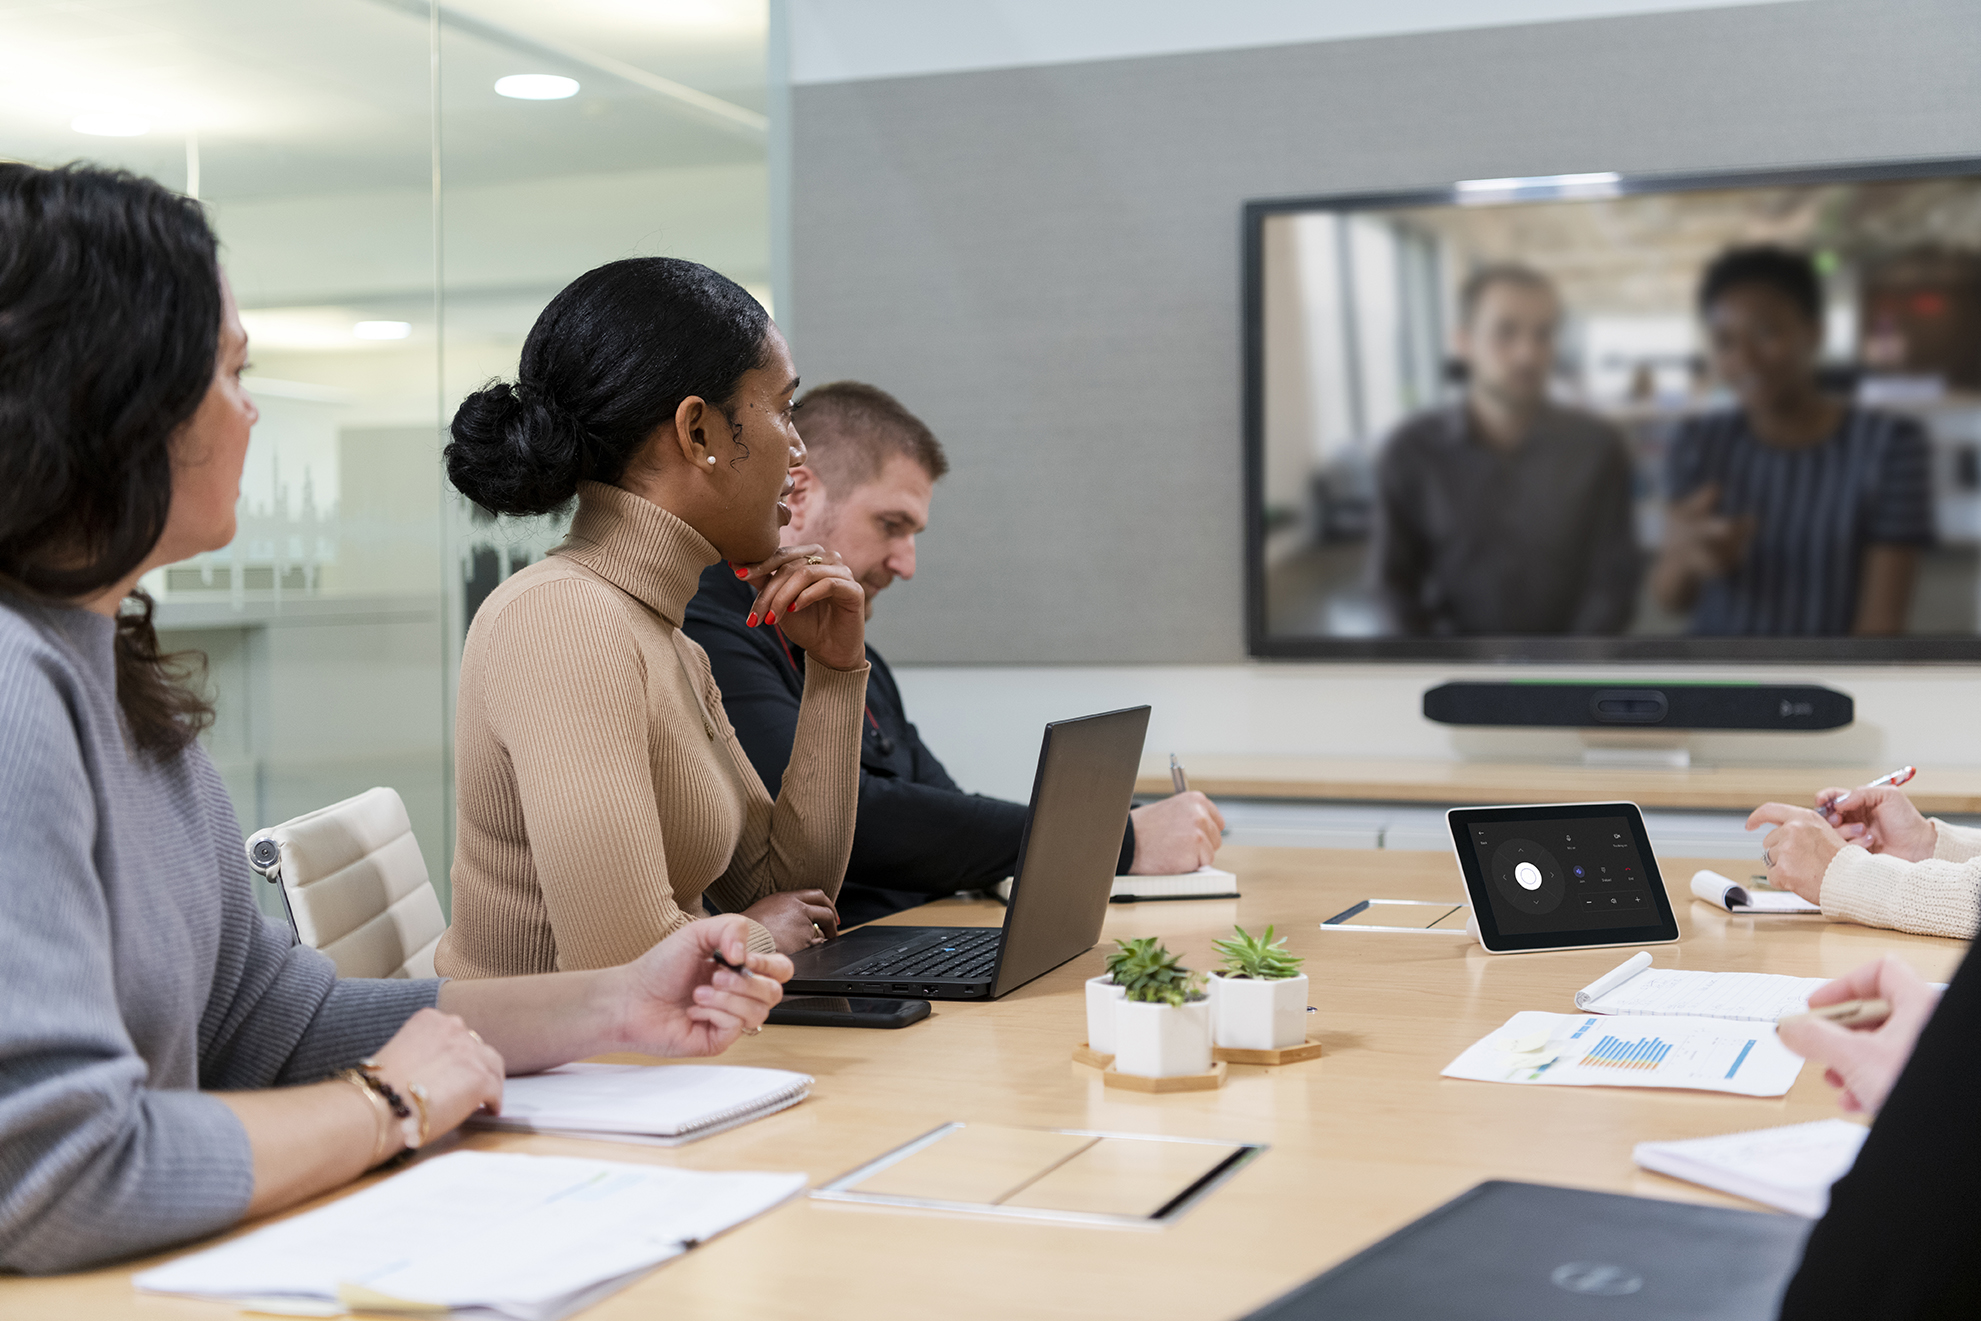 Medium Sized Room Video Conferencing